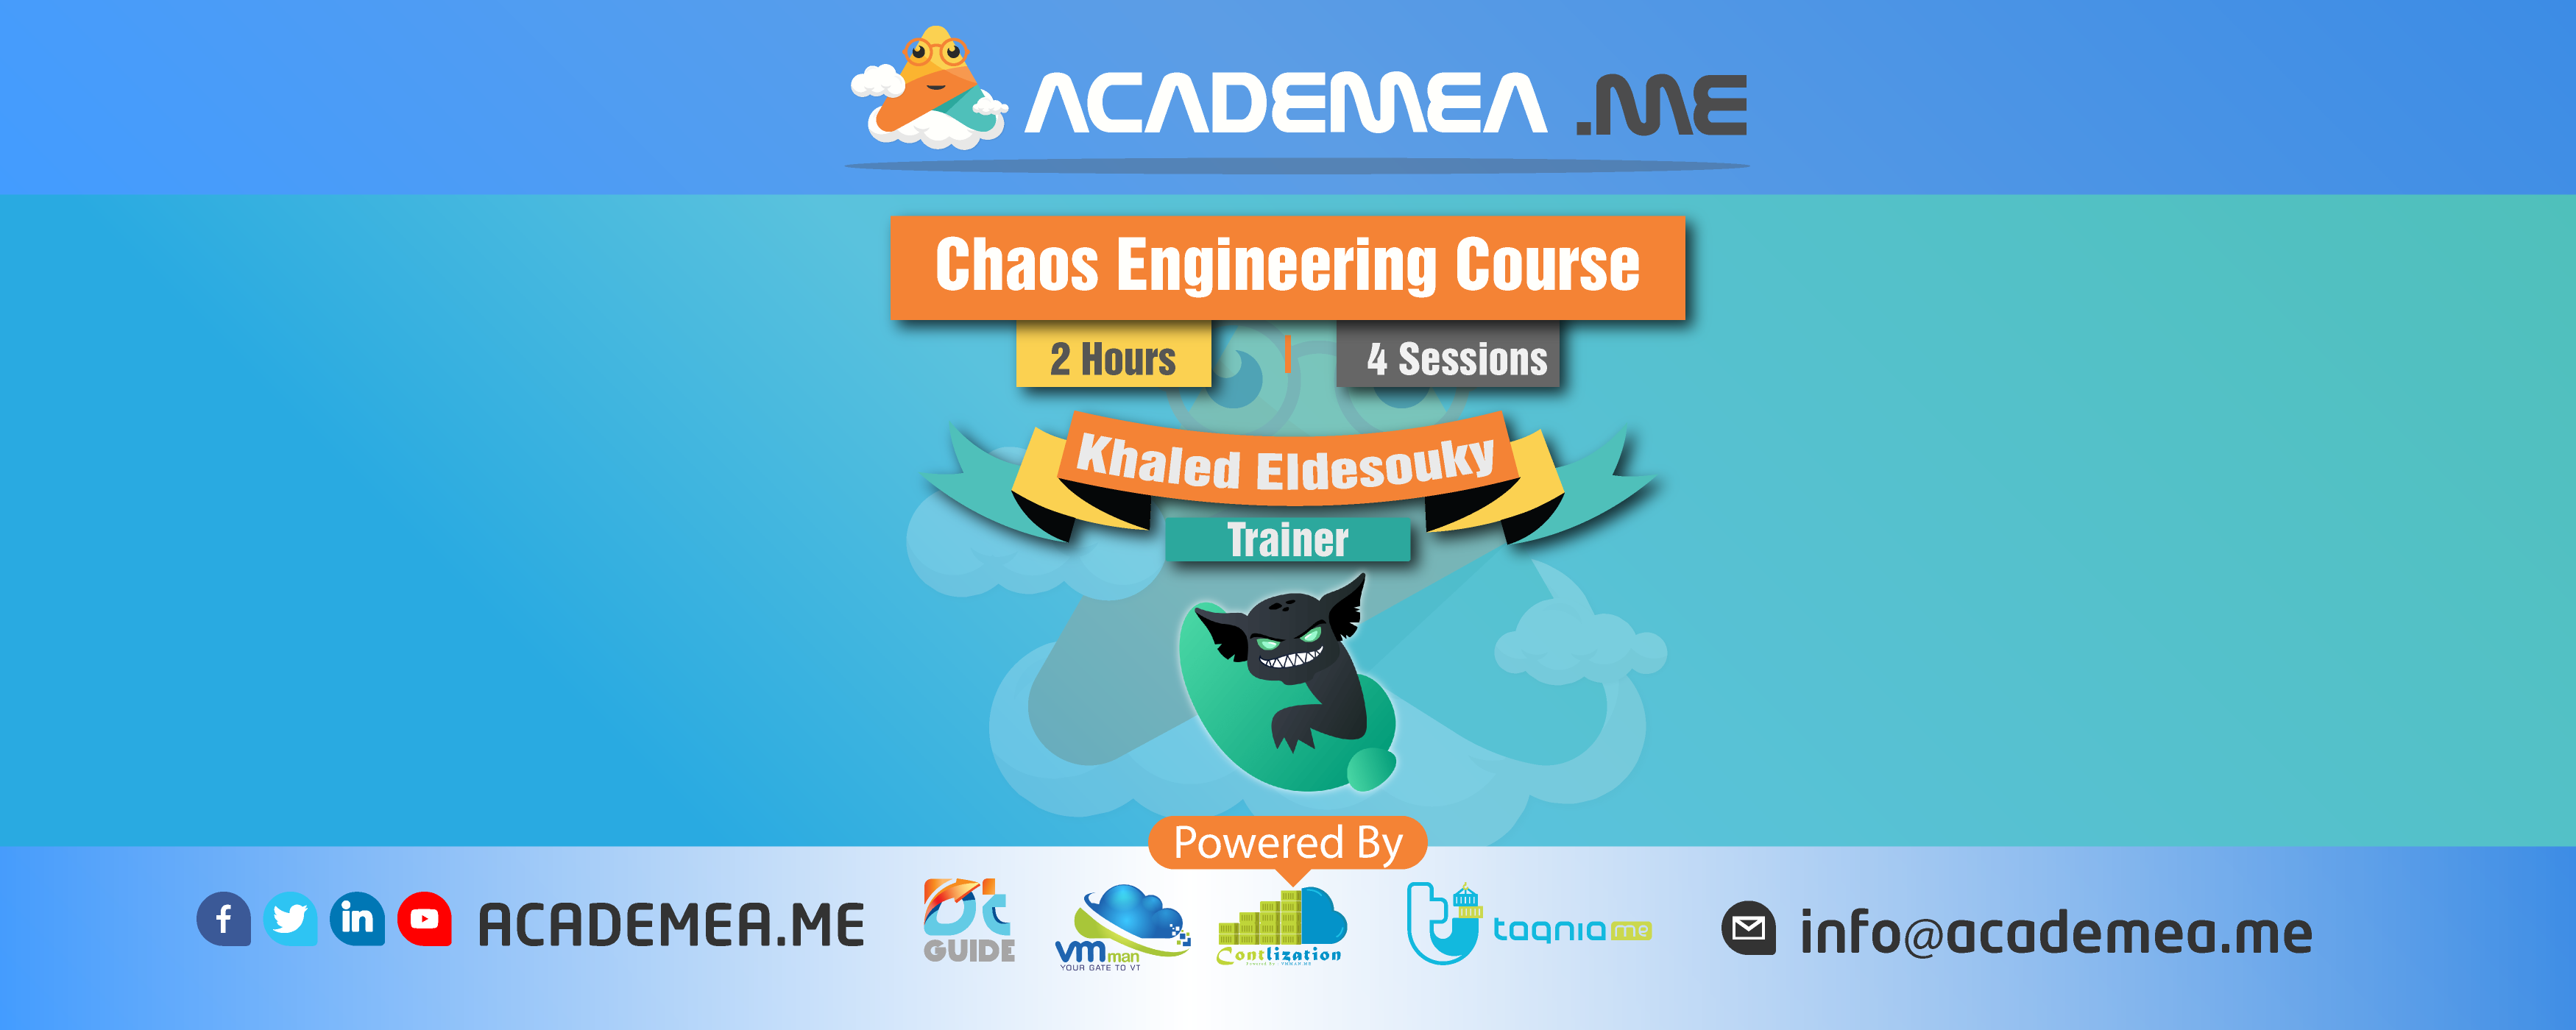 Chaos Engineering Course